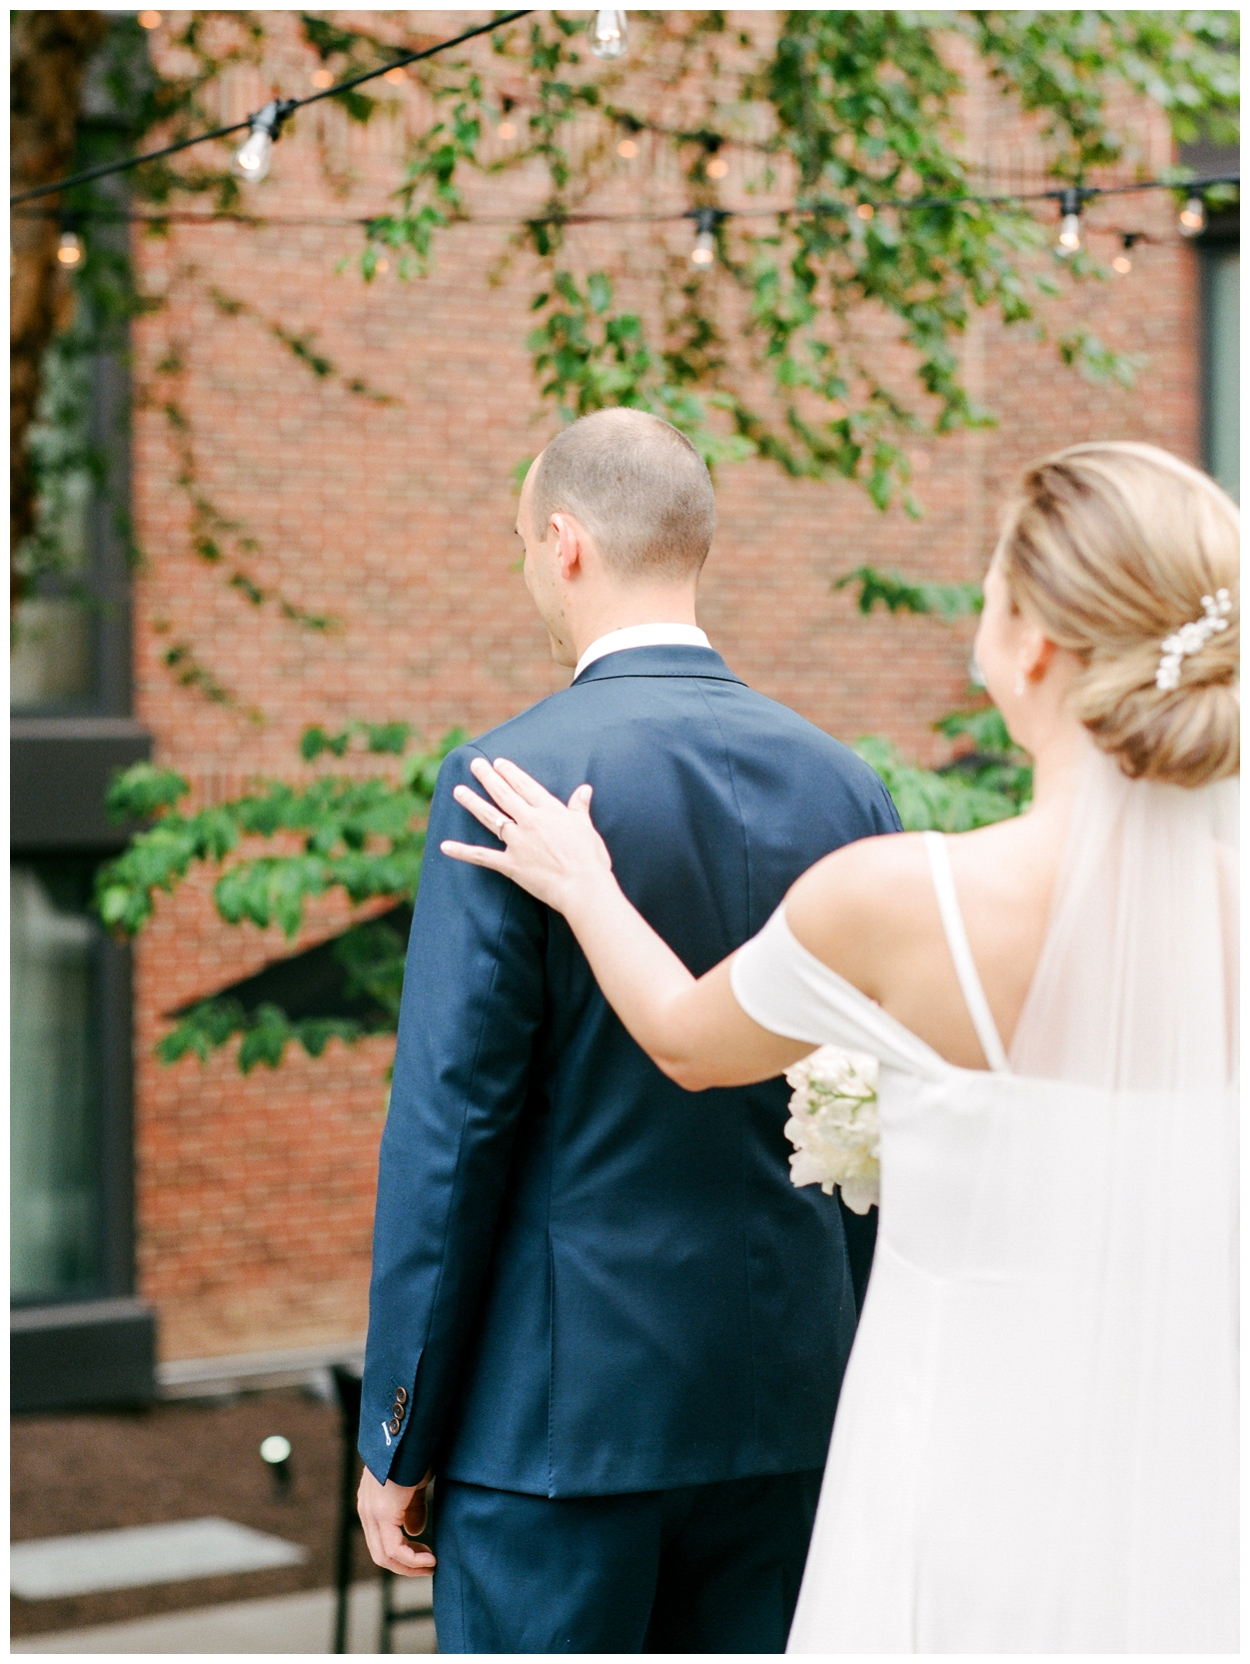 spring blush and white wedding at the Ritz Carlton Georgetown in Washington DC by fine art wedding photographer Lissa Ryan Photography